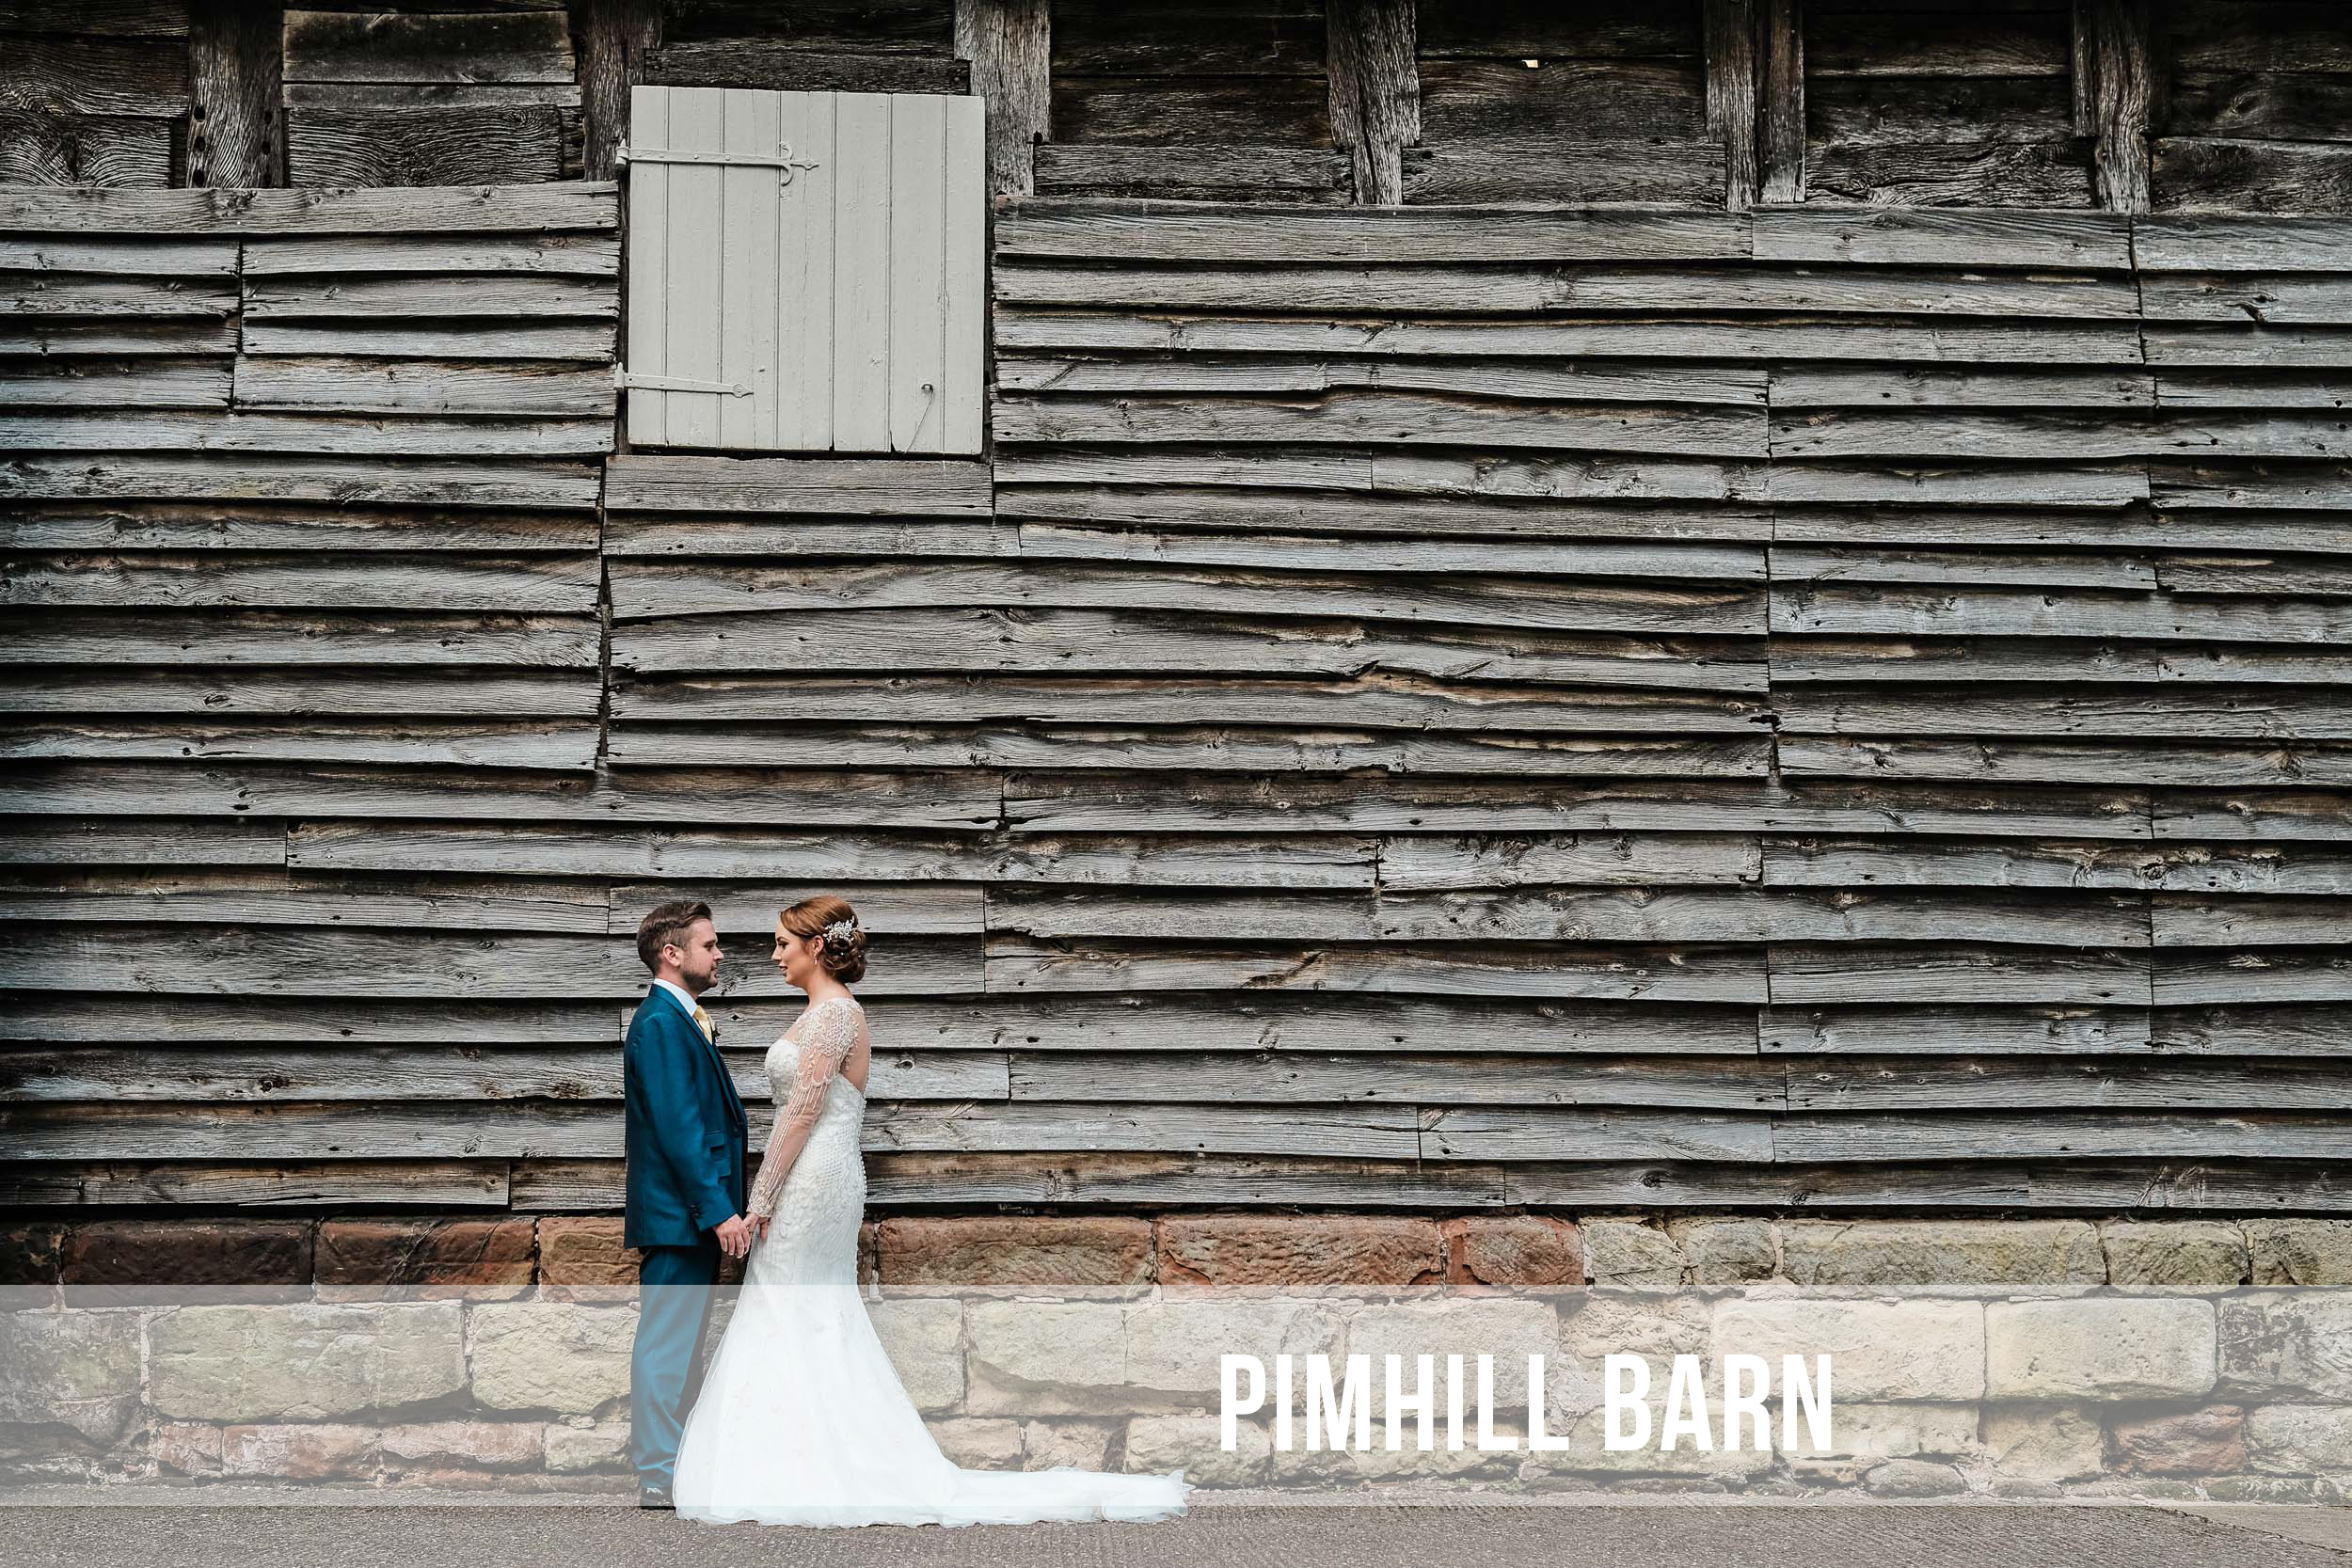 Pimhill Barn Wedding Photographer.jpg